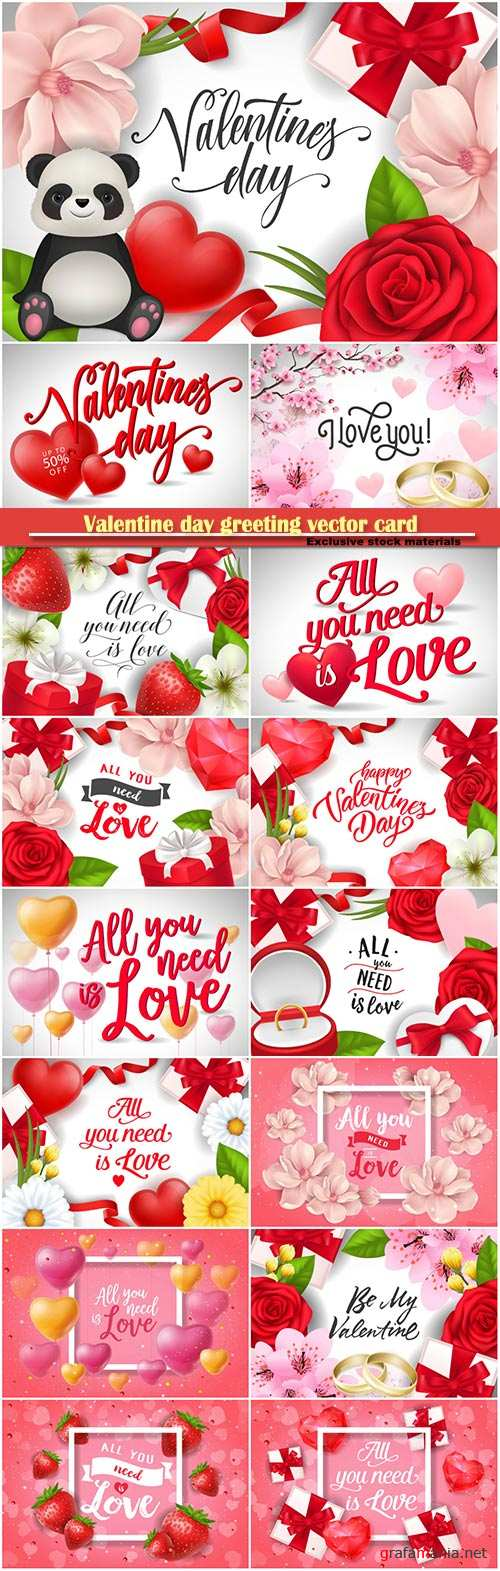 Valentine day greeting vector card, hearts i love you # 24